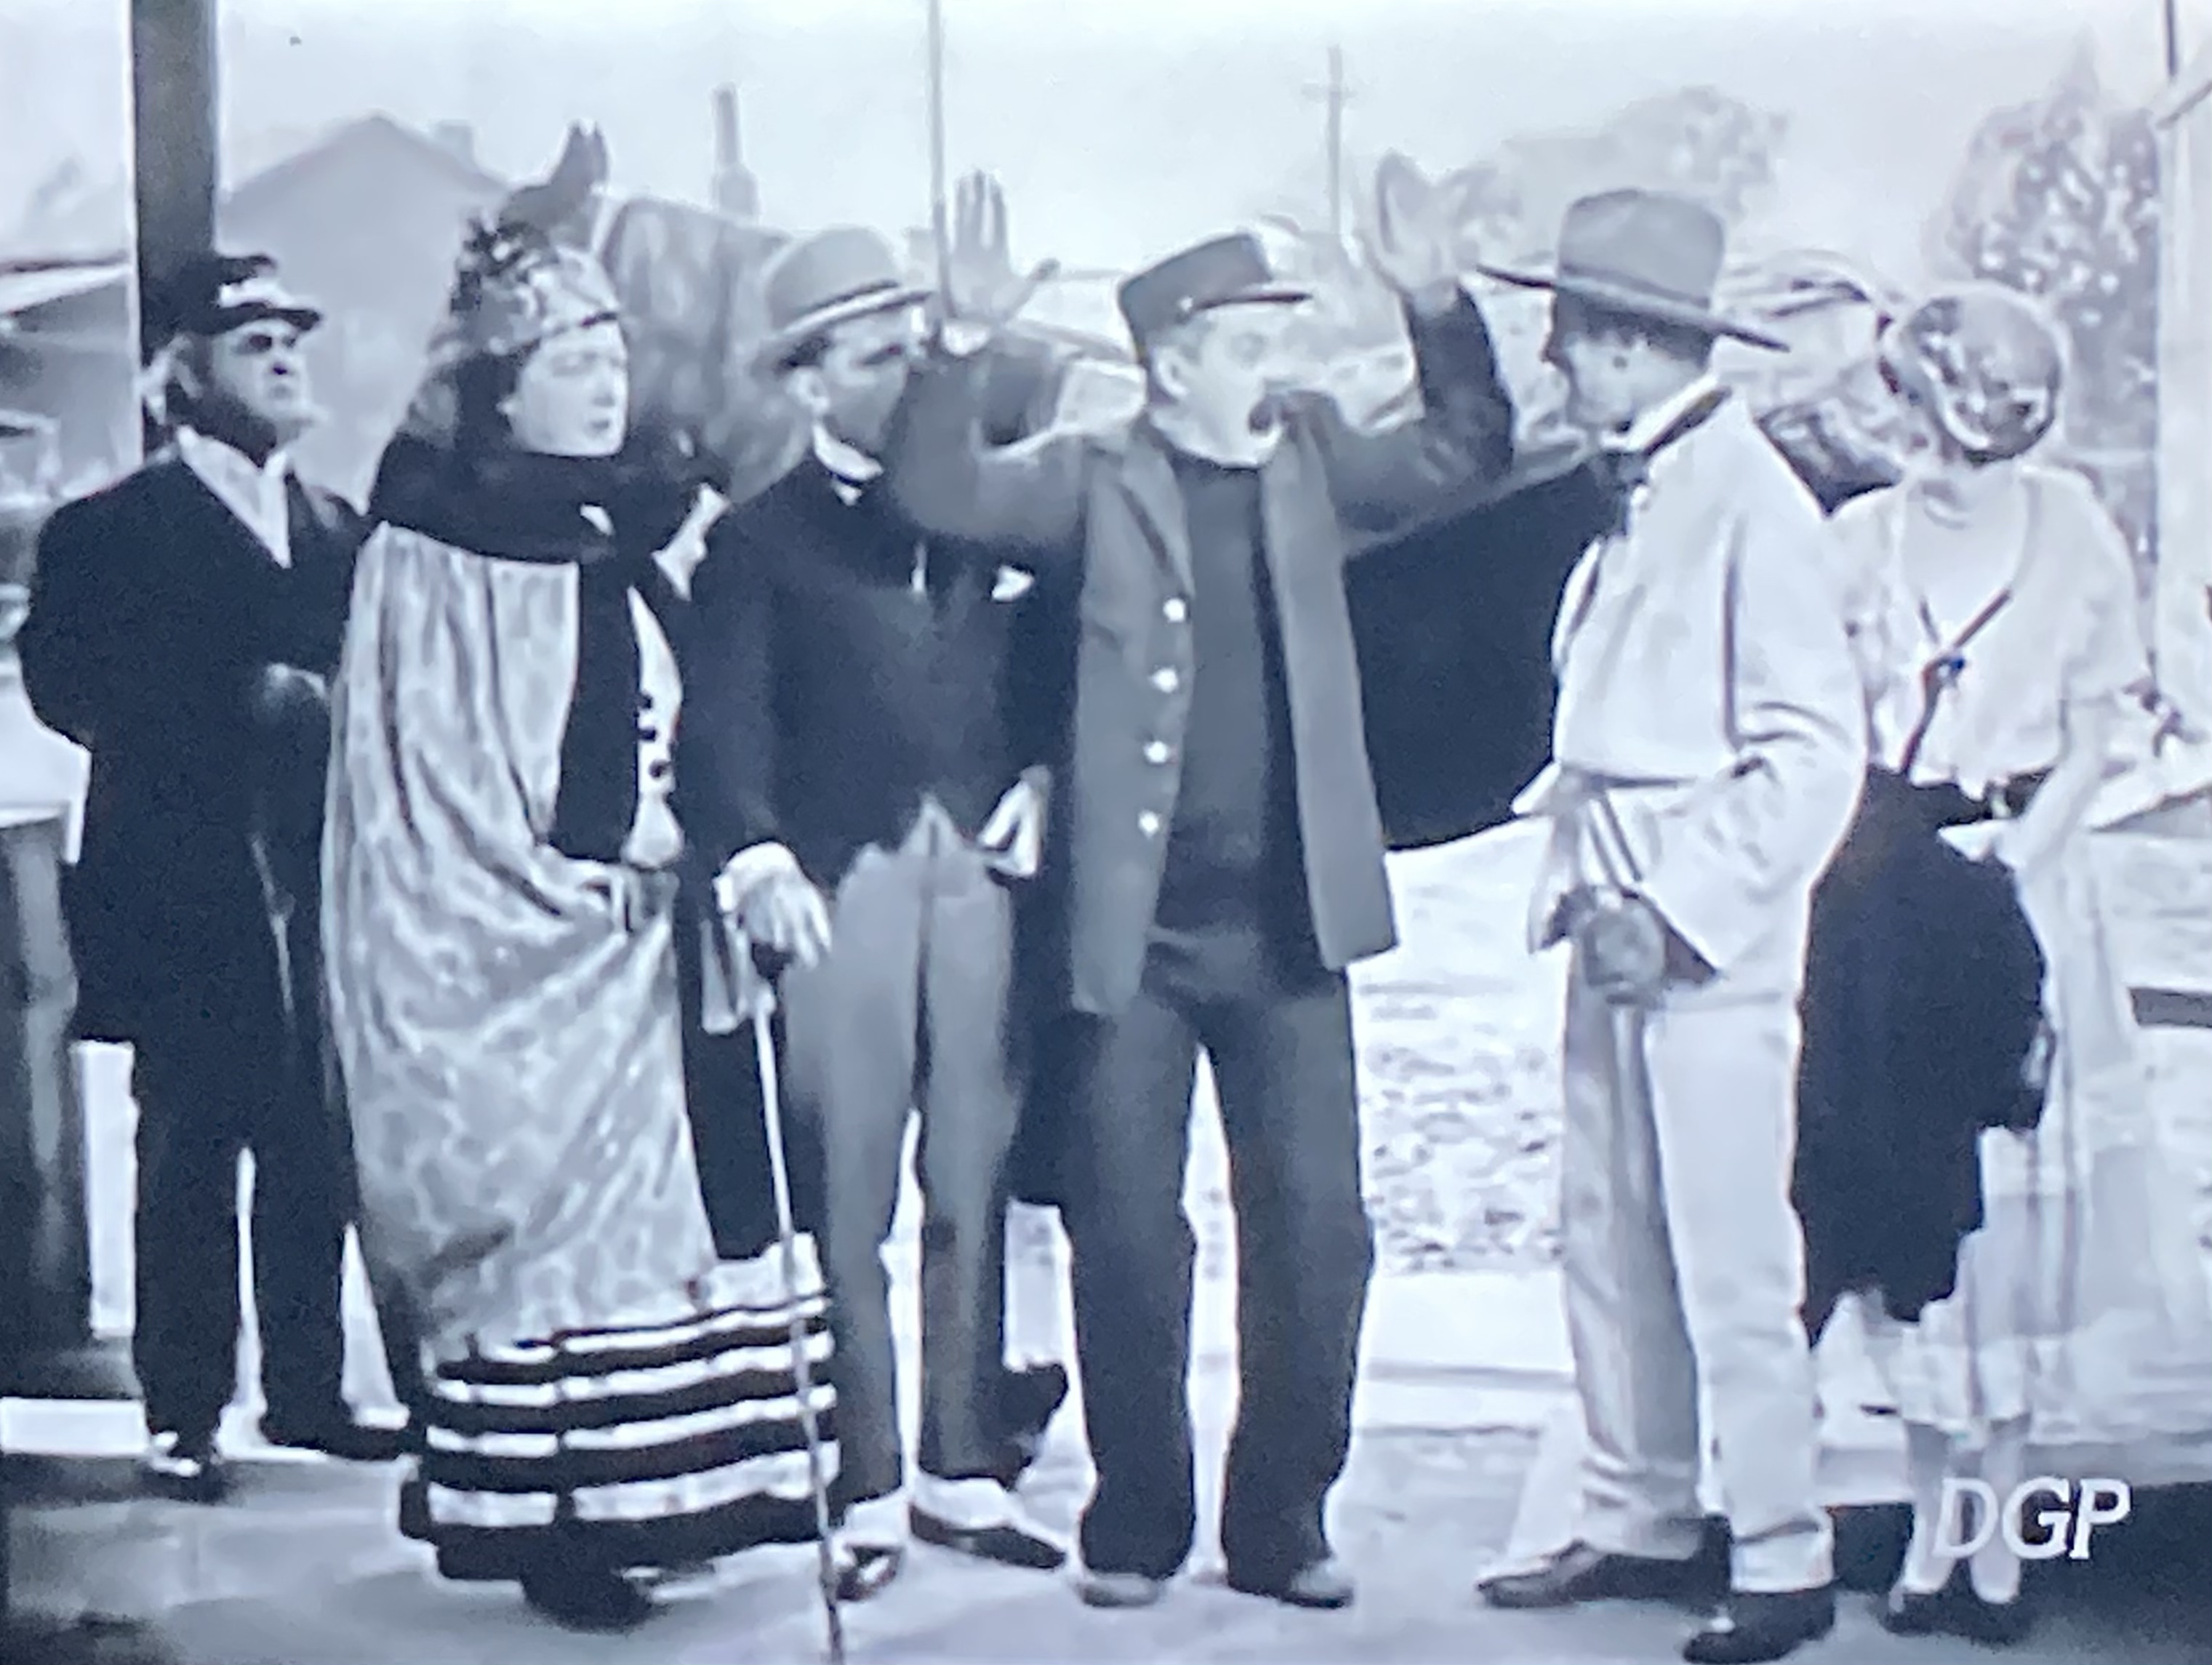 Billy Bevan, Andy Clyde, and Sunshine Hart in The Iron Nag (1925)